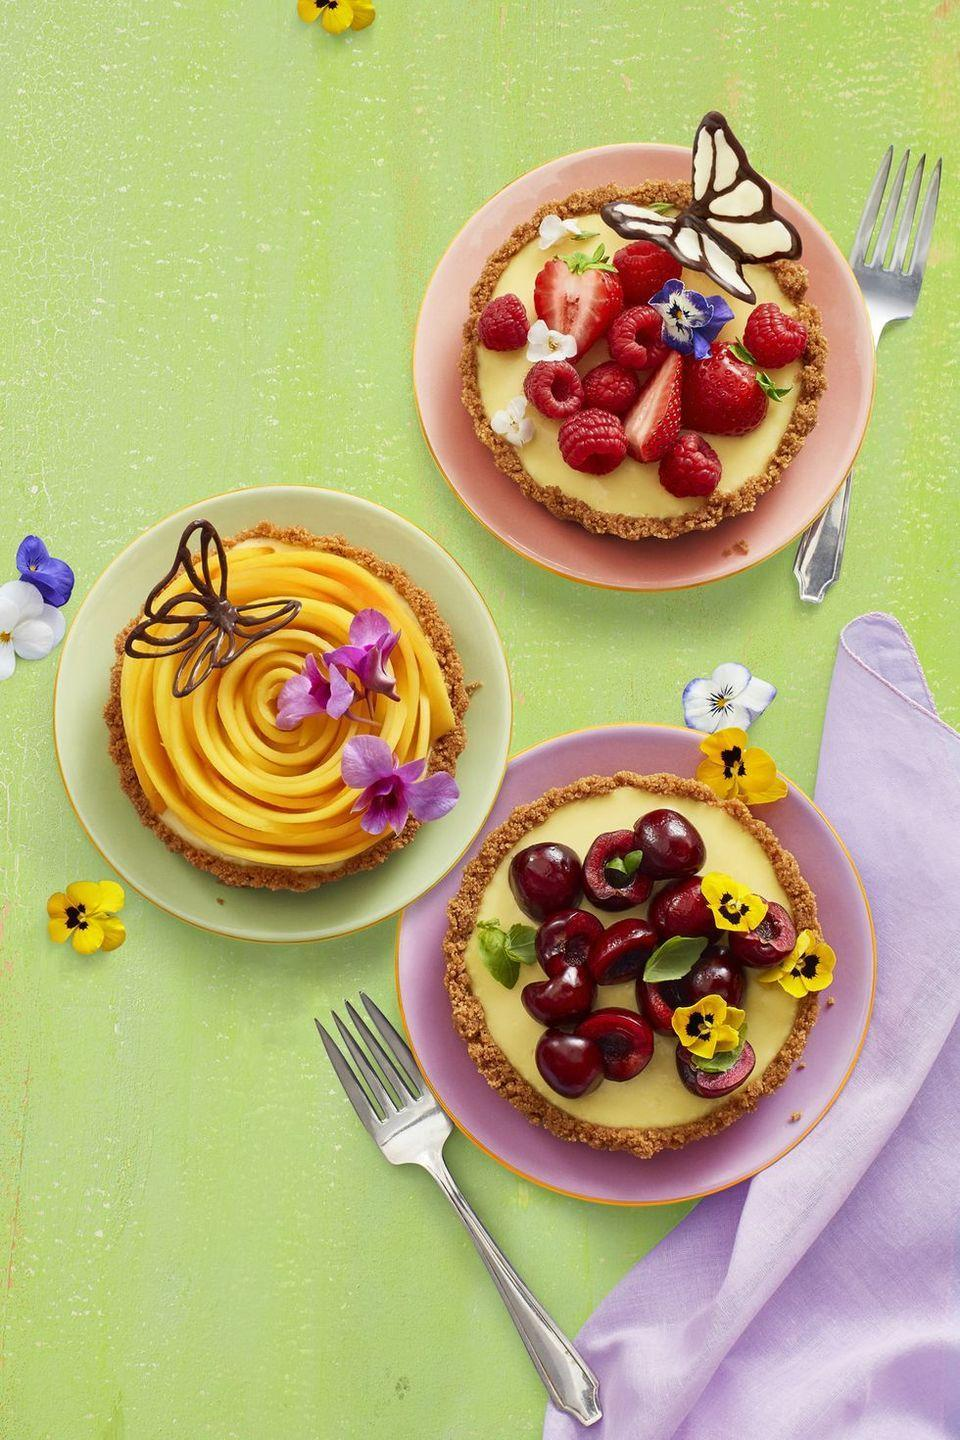 """<p>You don't even need to turn on the oven to serve up these citrusy sweets.</p><p><em><a href=""""https://www.womansday.com/food-recipes/food-drinks/a19810477/no-bake-lemon-tarts-recipe/"""" rel=""""nofollow noopener"""" target=""""_blank"""" data-ylk=""""slk:Get the recipe from Woman's Day »"""" class=""""link rapid-noclick-resp"""">Get the recipe from Woman's Day »</a></em></p>"""